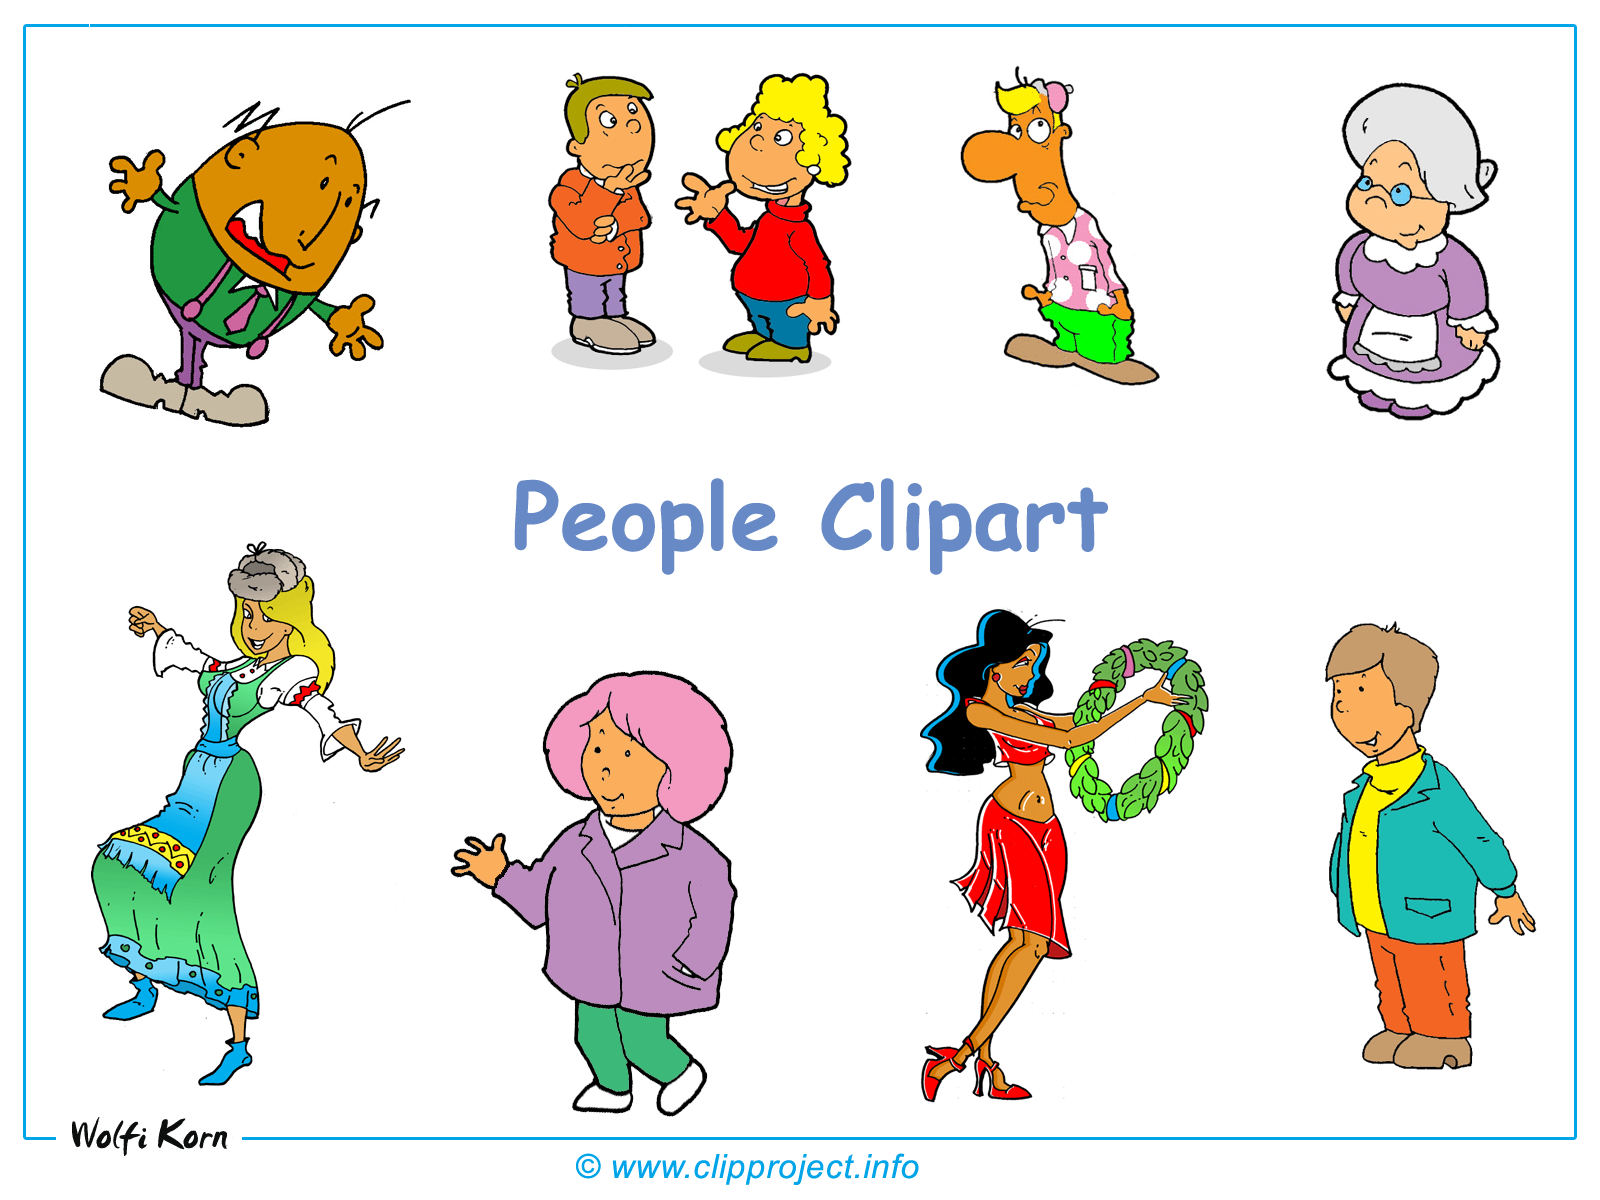 People Clipart Desktop .